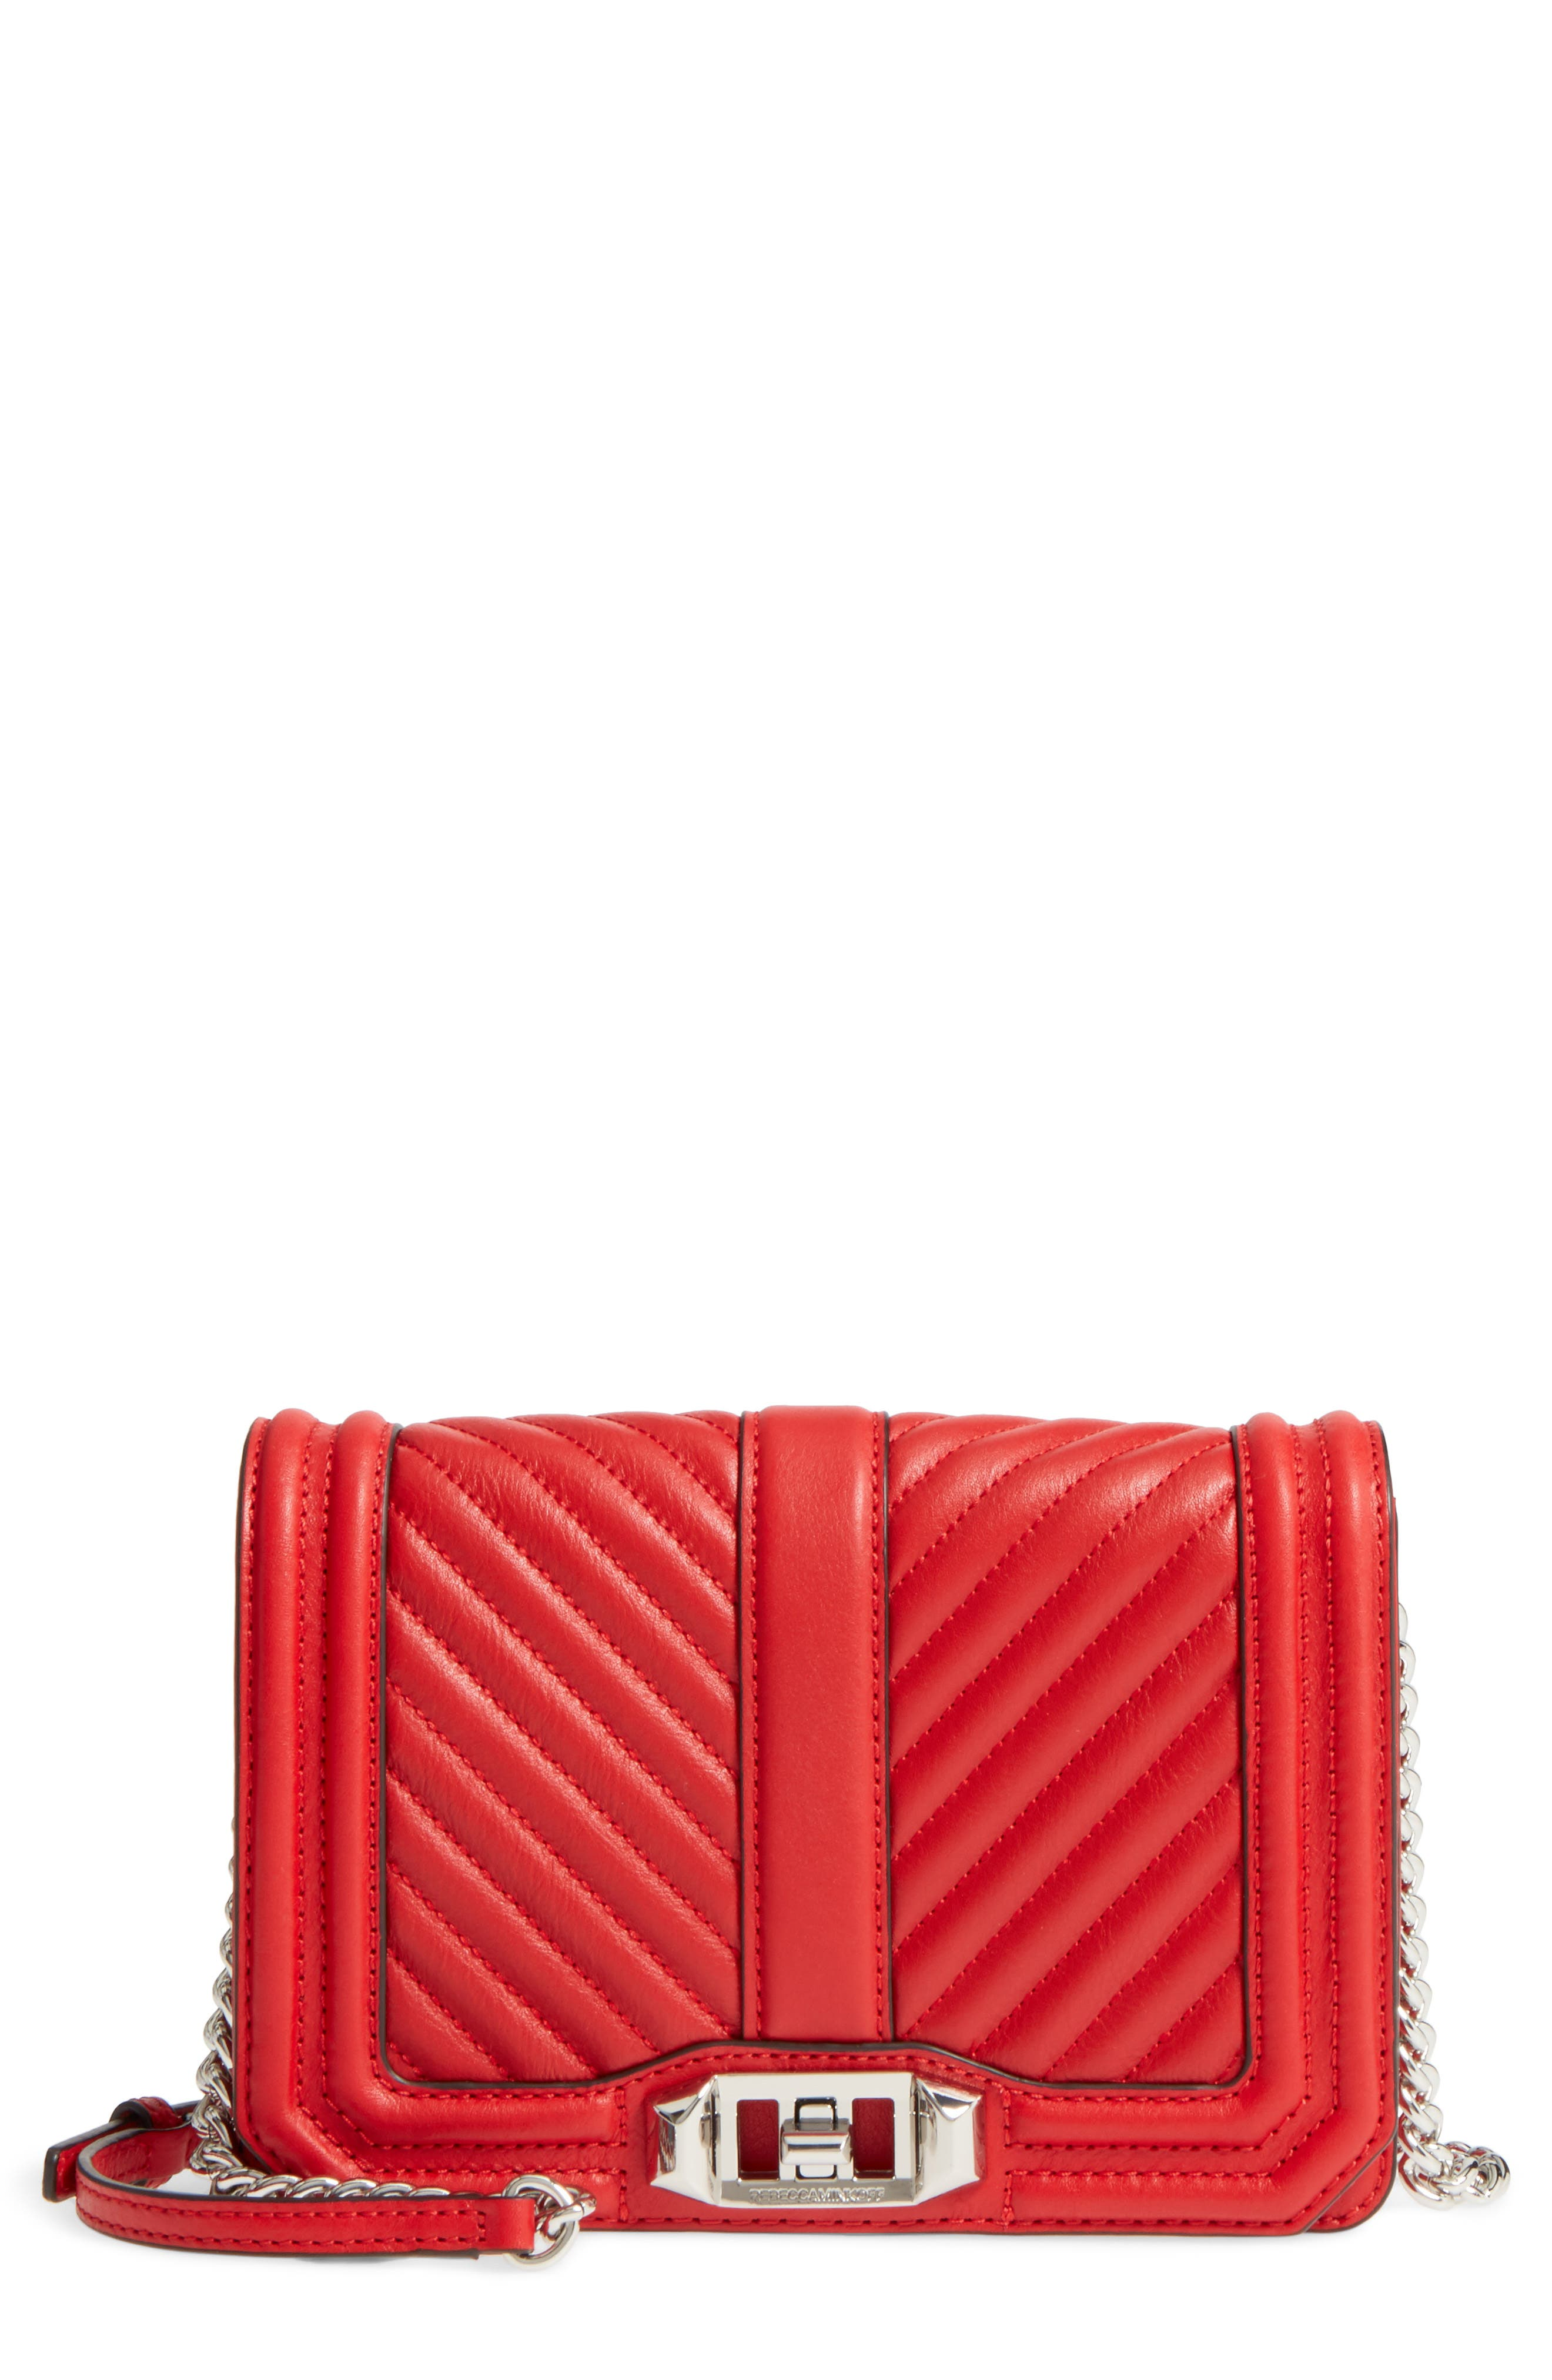 Small Love Quilted Leather Crossbody Bag,                         Main,                         color, 636